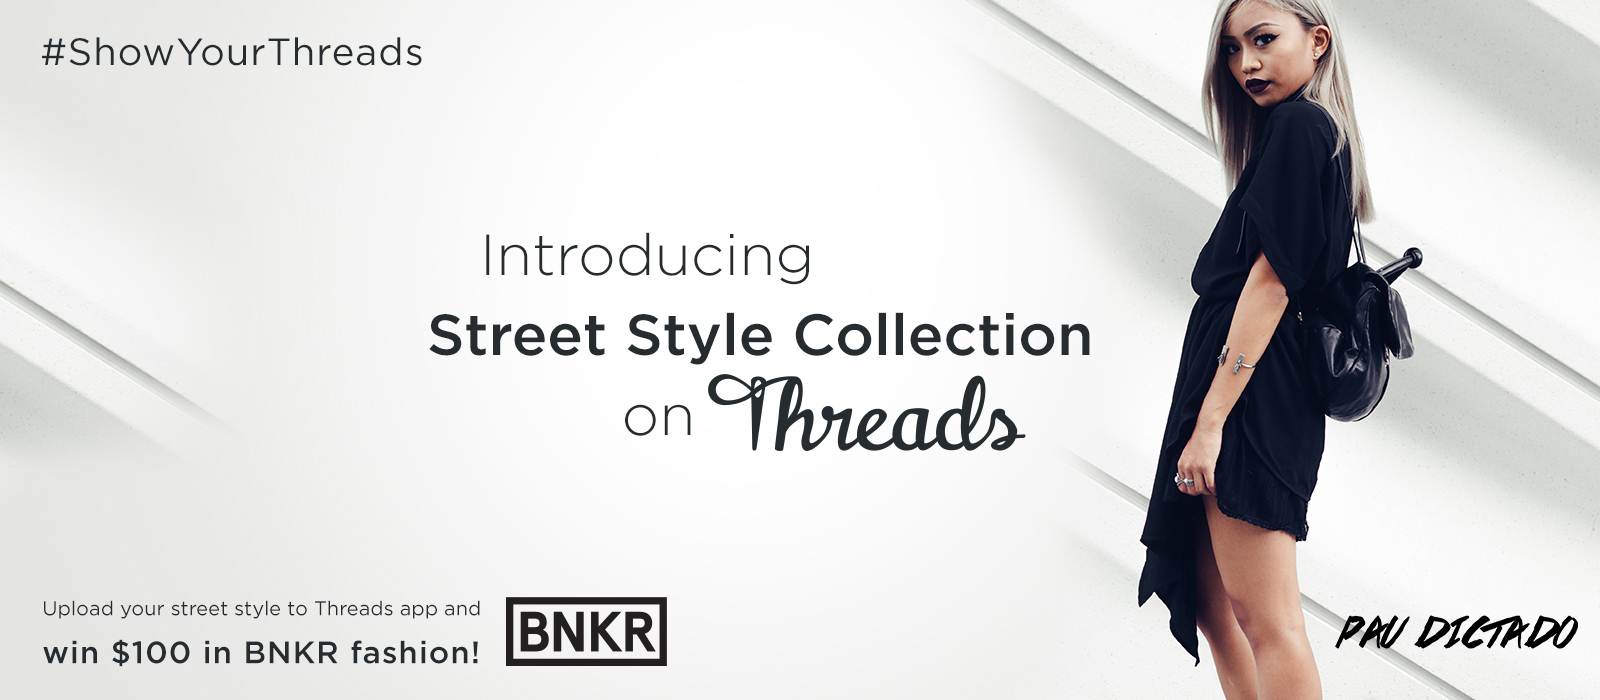 Post your street style to Threads and you could win $100 in BNKR fashion! (contest ends 11/13)